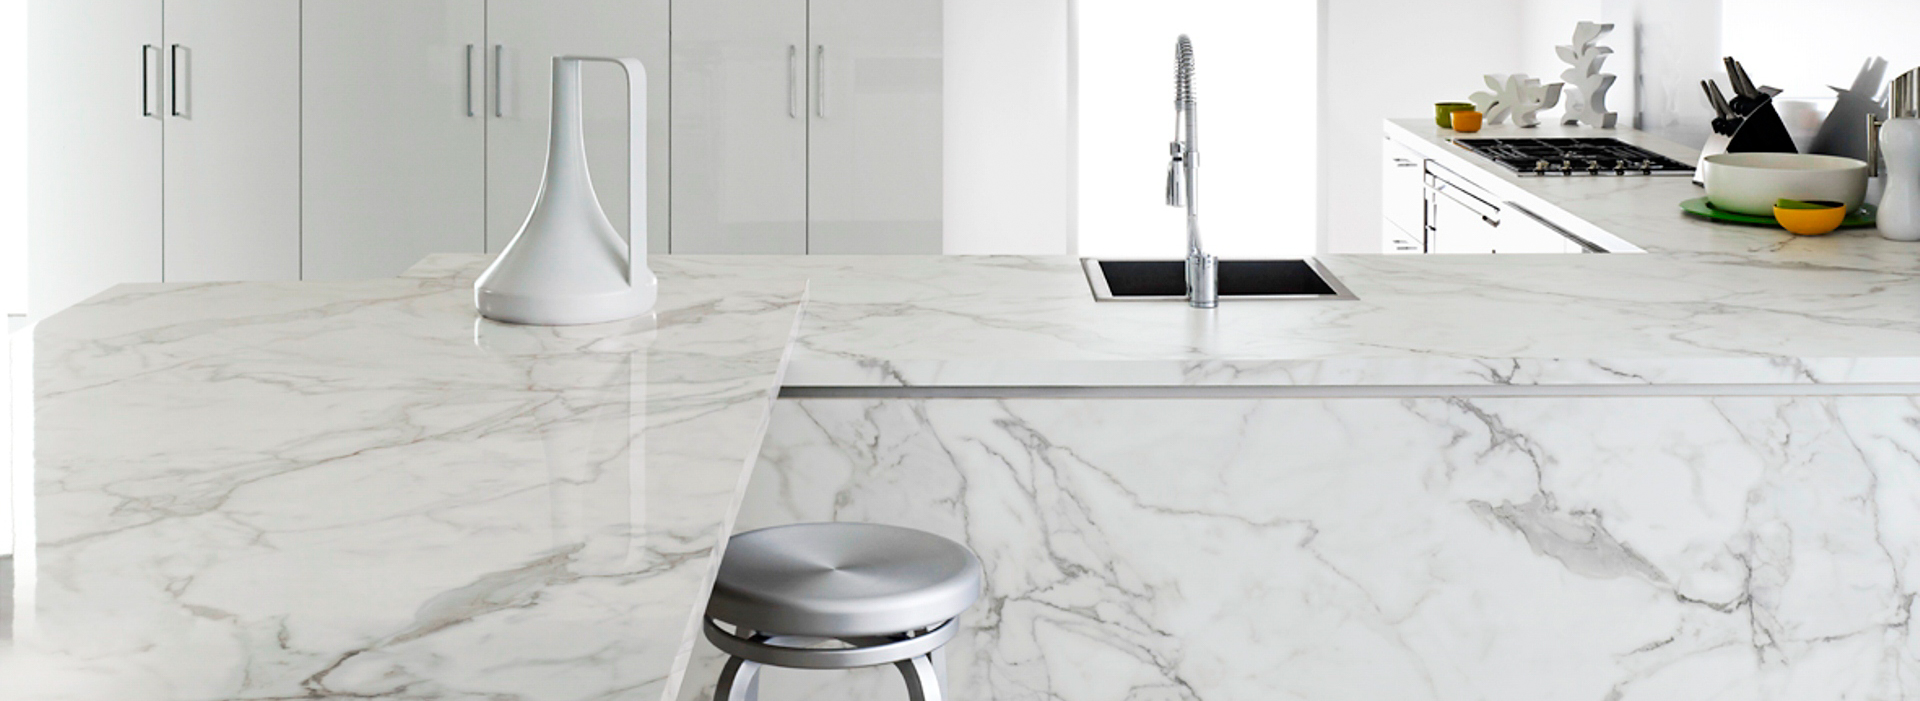 Formica® EliteForm technology features industry-leading scratch resistance so that your countertops are able to stand up to the wear and tear of daily life.